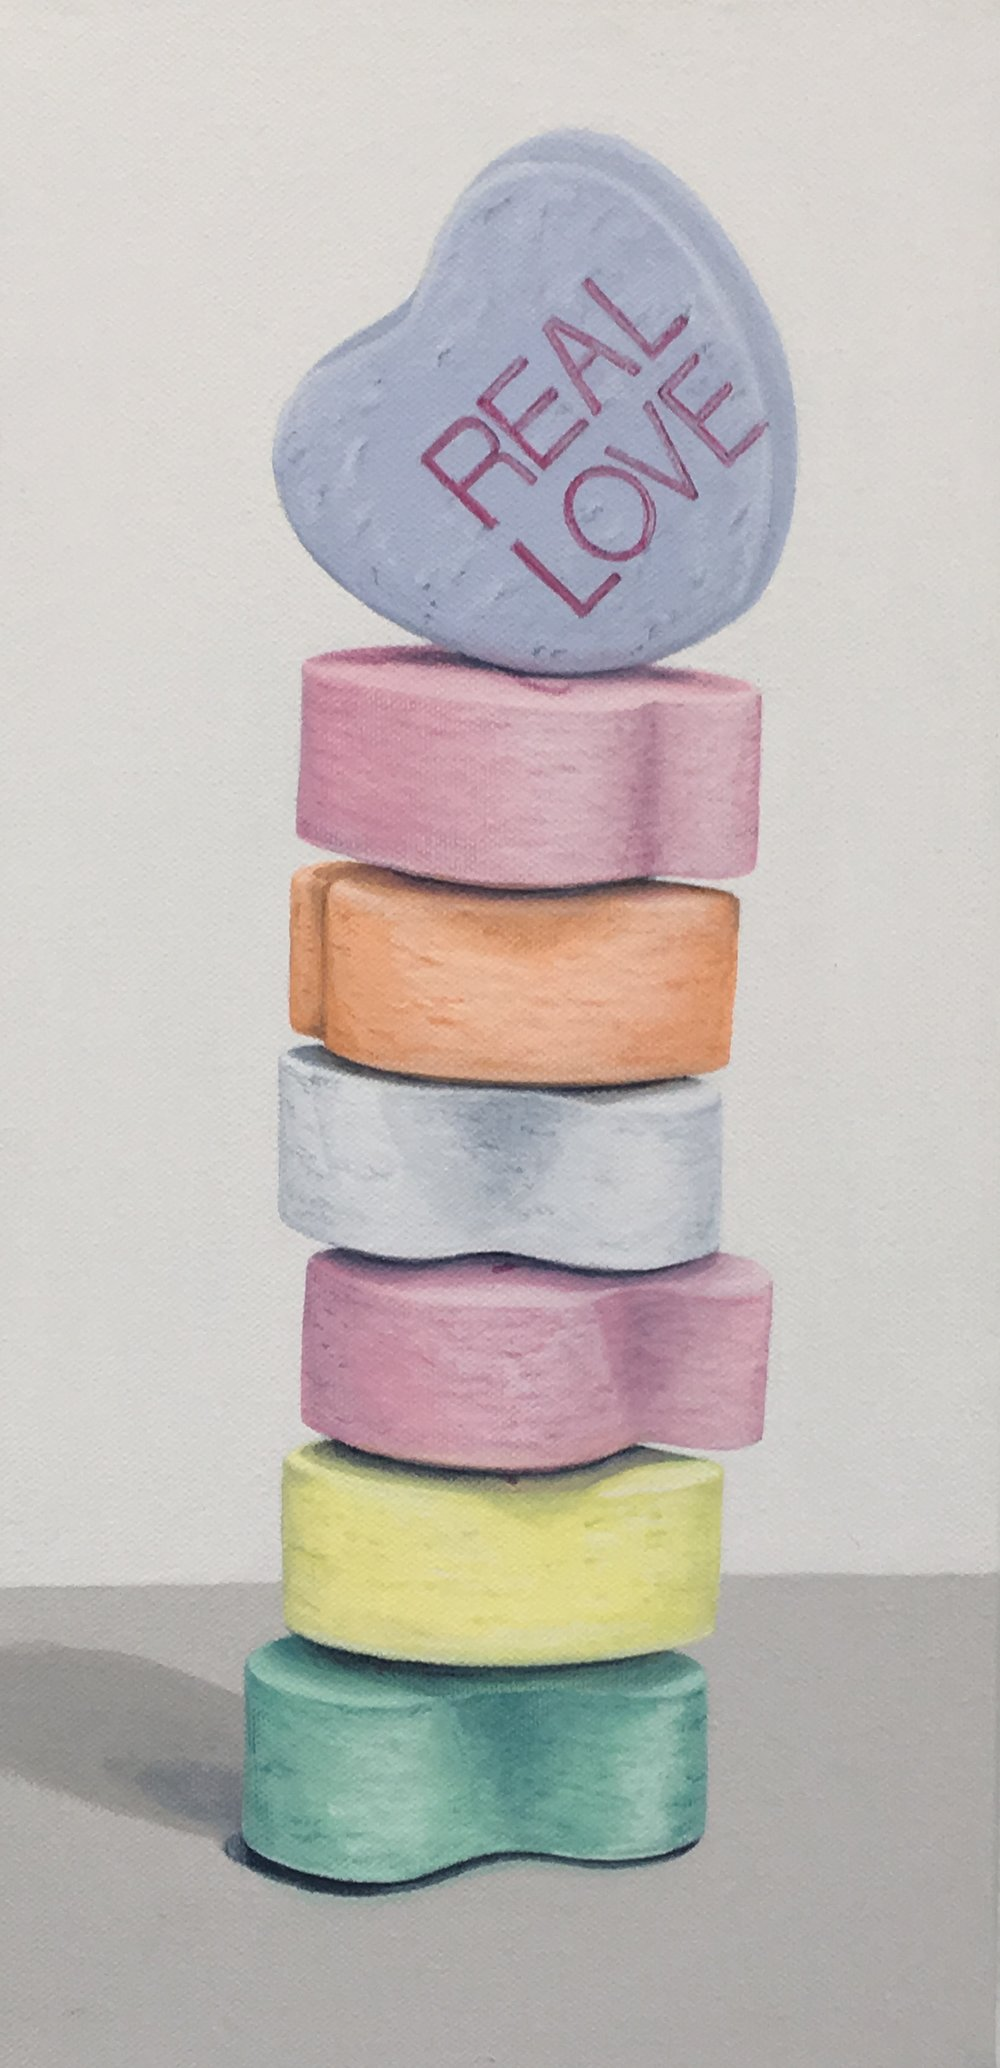 "Totem: Converation Hearts  This little stack of candy hearts are the iconic Valentine sweet. Each heart has pink printing dispenses tiny bits of advice, often off center, faint or blurry, and occasionally nonsensical.        8"" x 16"" gallery wrapped canvas  $400.00"